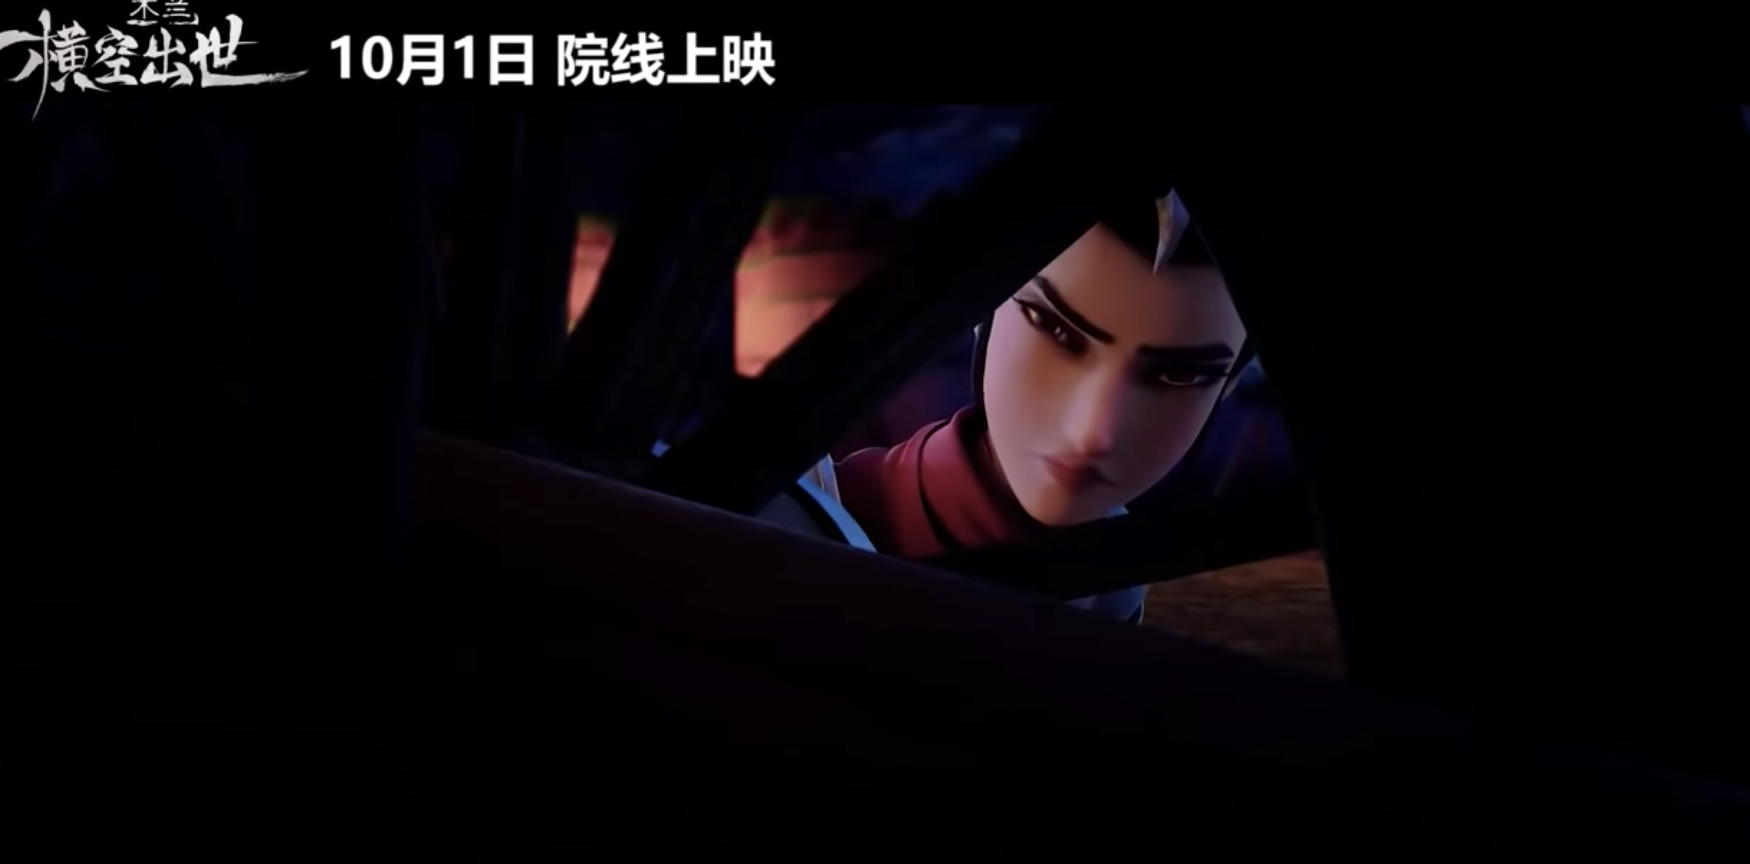 """A Chinese studio recently released a new """"Mulan"""" film called """"Kung Fu Mulan"""" in China, but the film saw little to no success at the box office."""